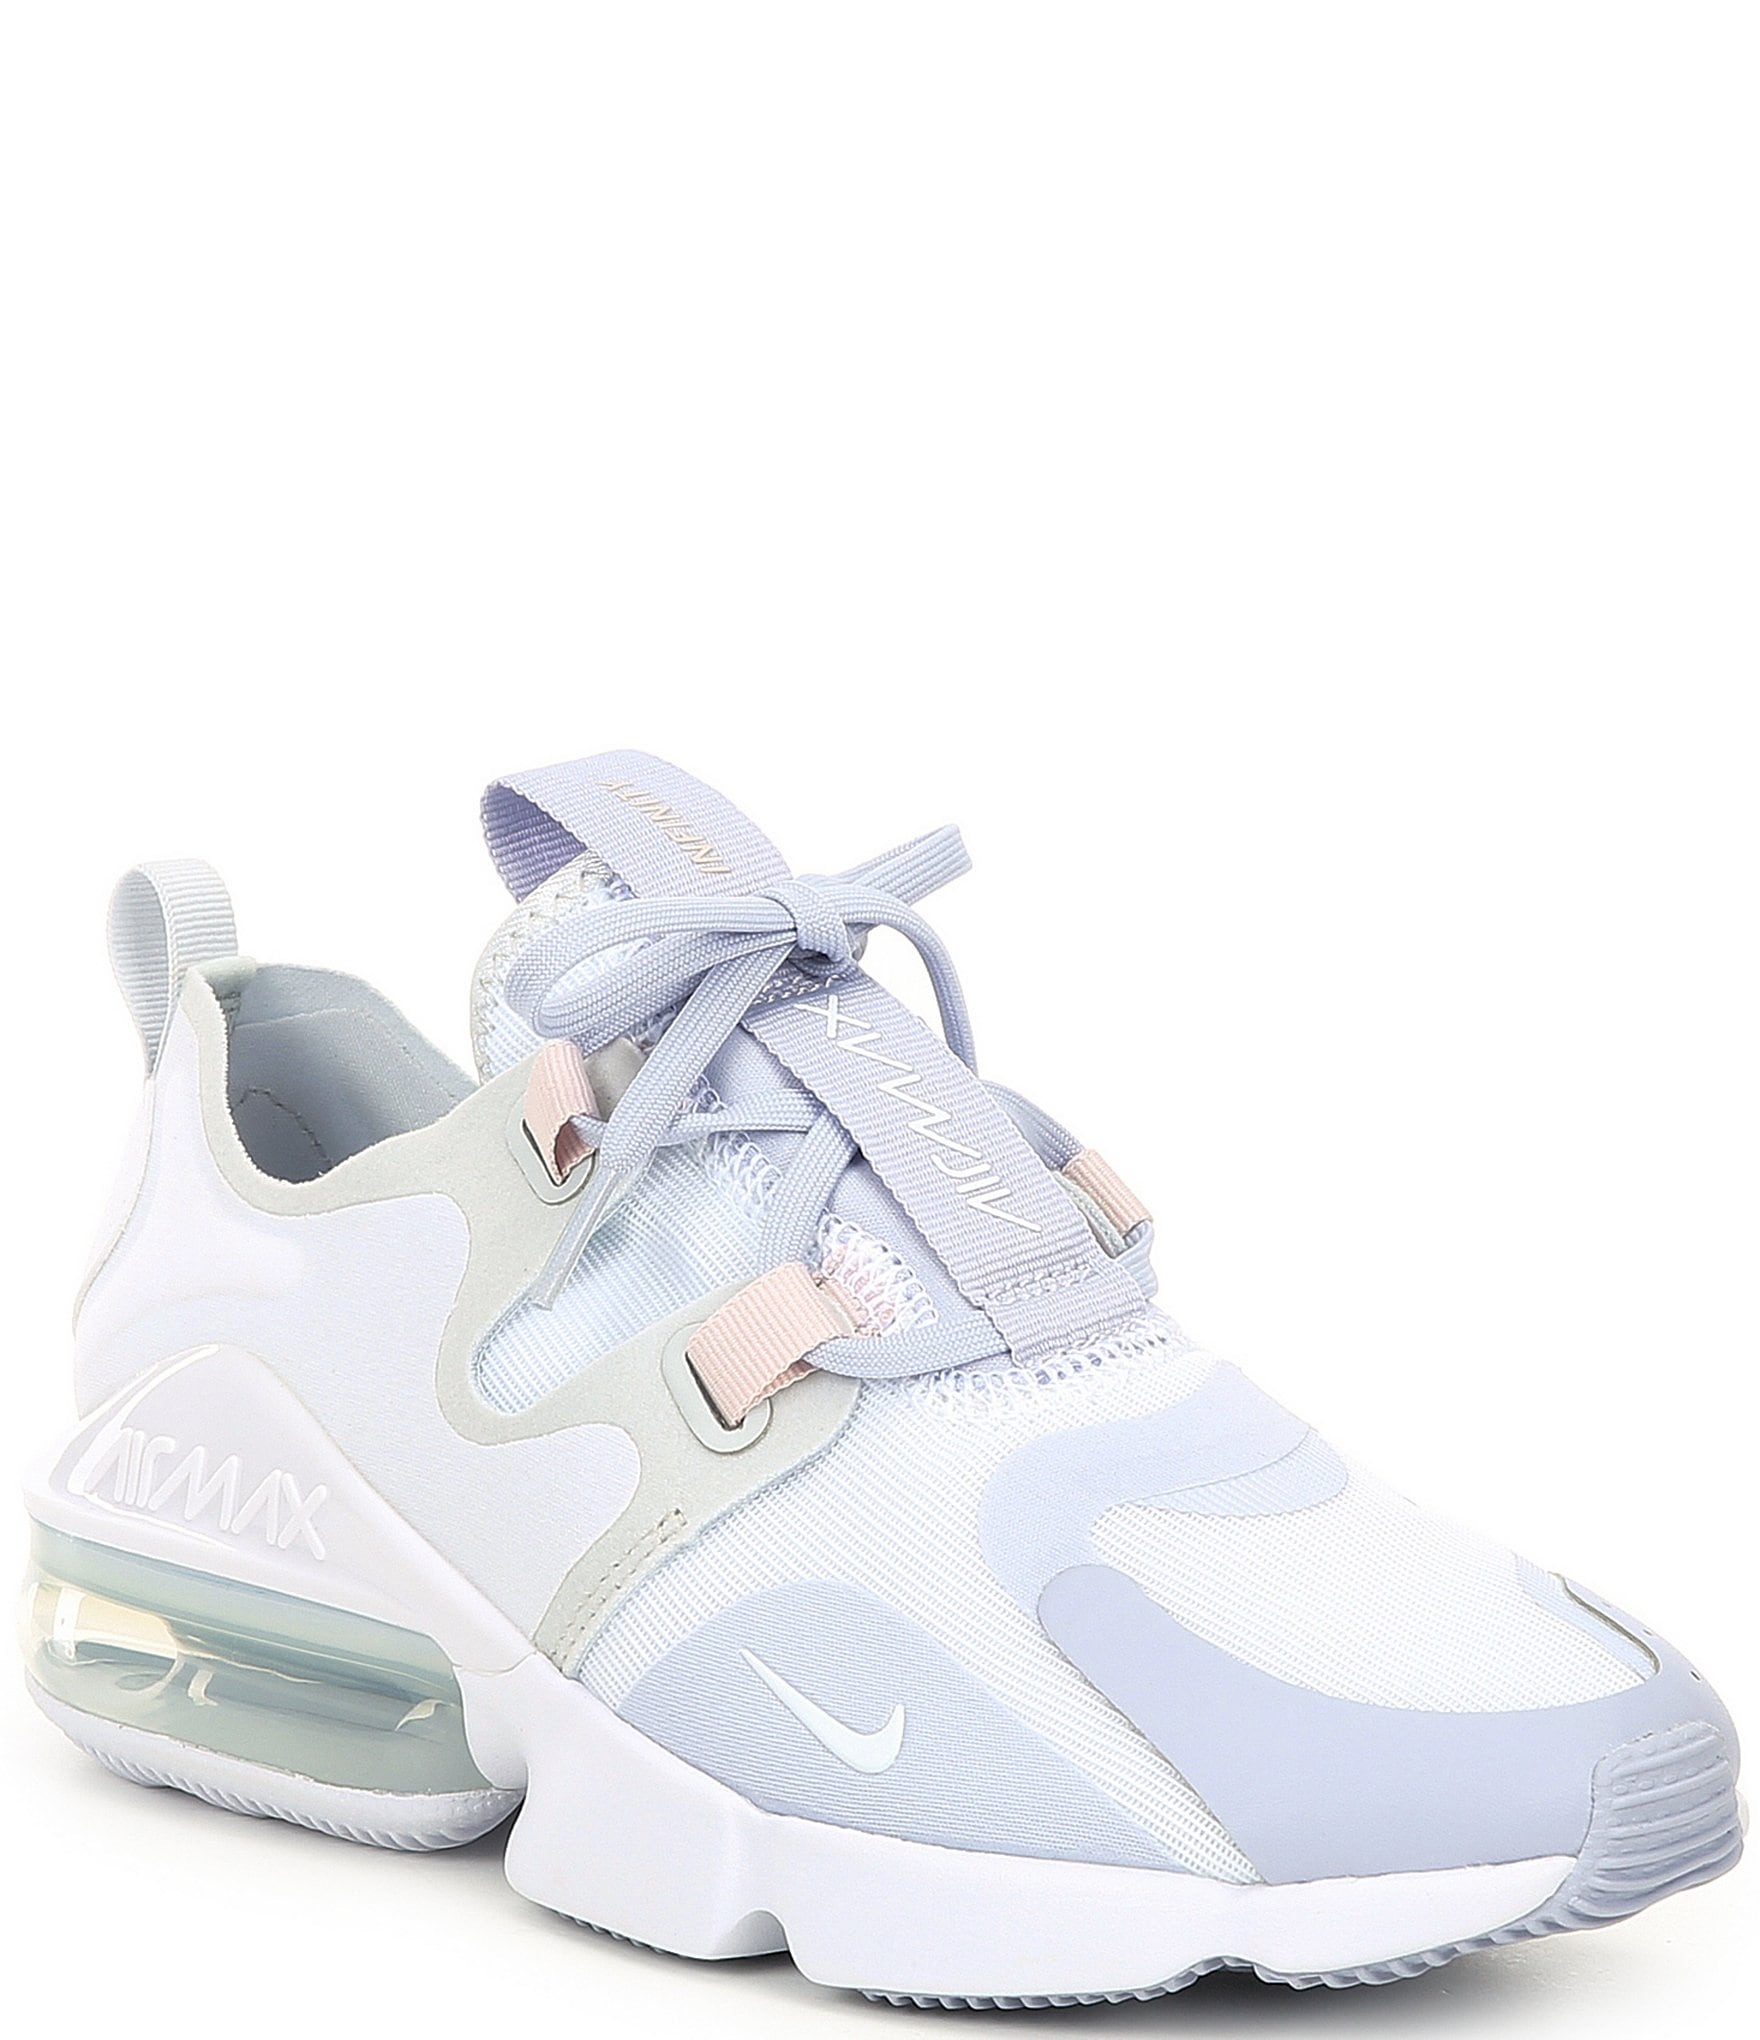 Air Max Infinity Lifestyle Shoes